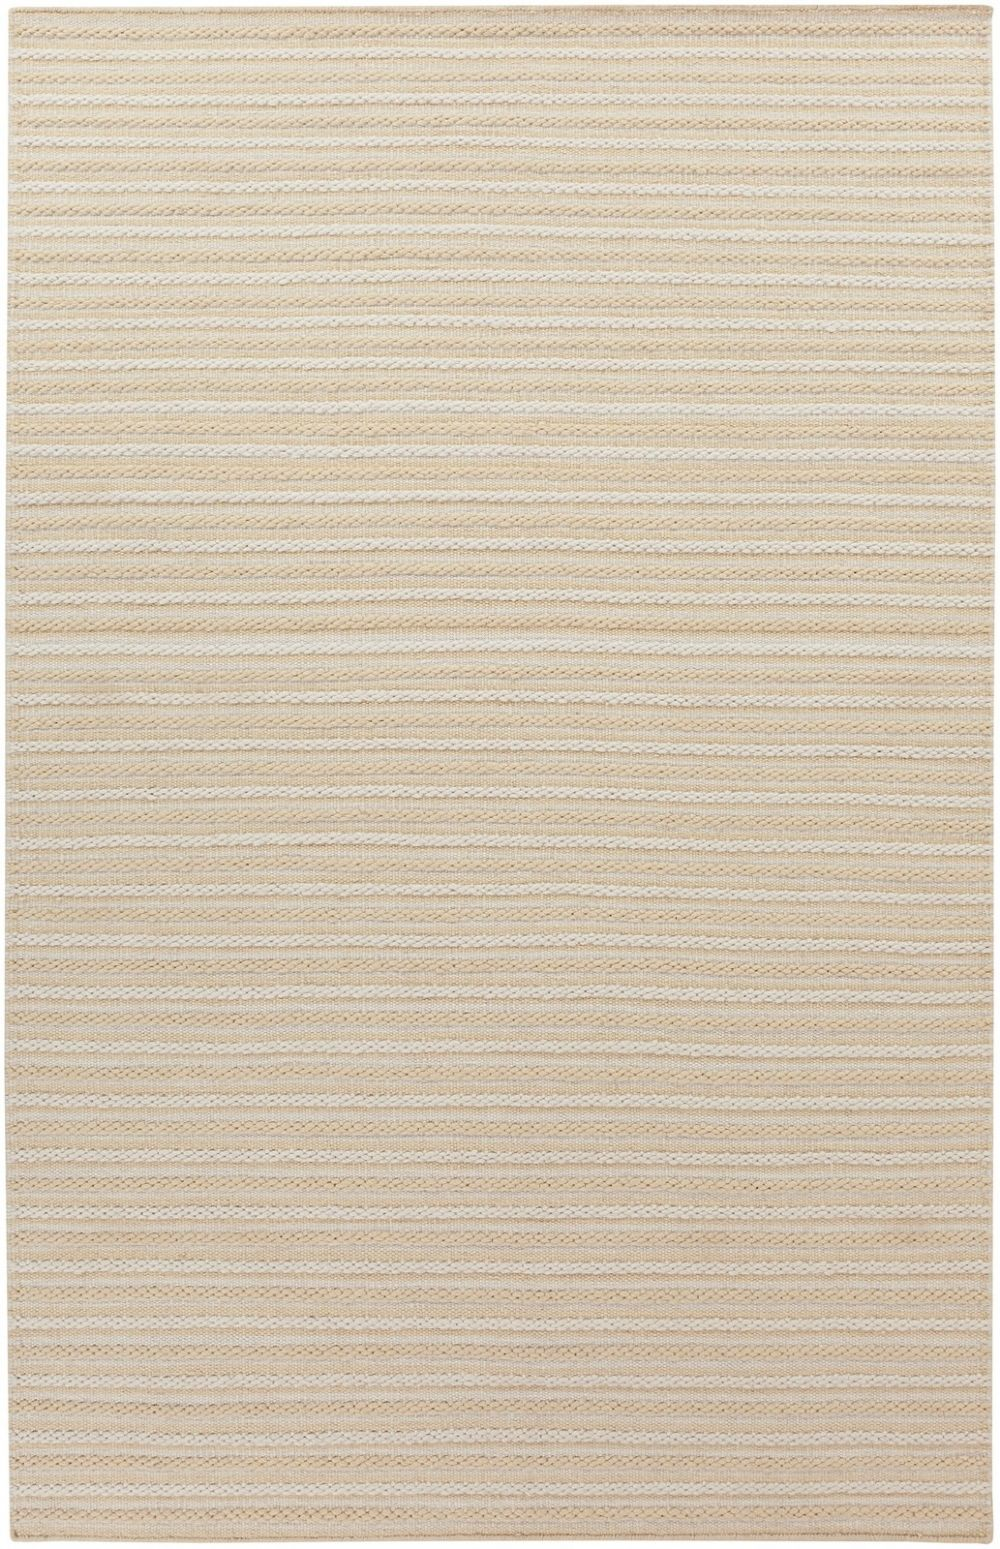 surya ravena solid/striped area rug collection